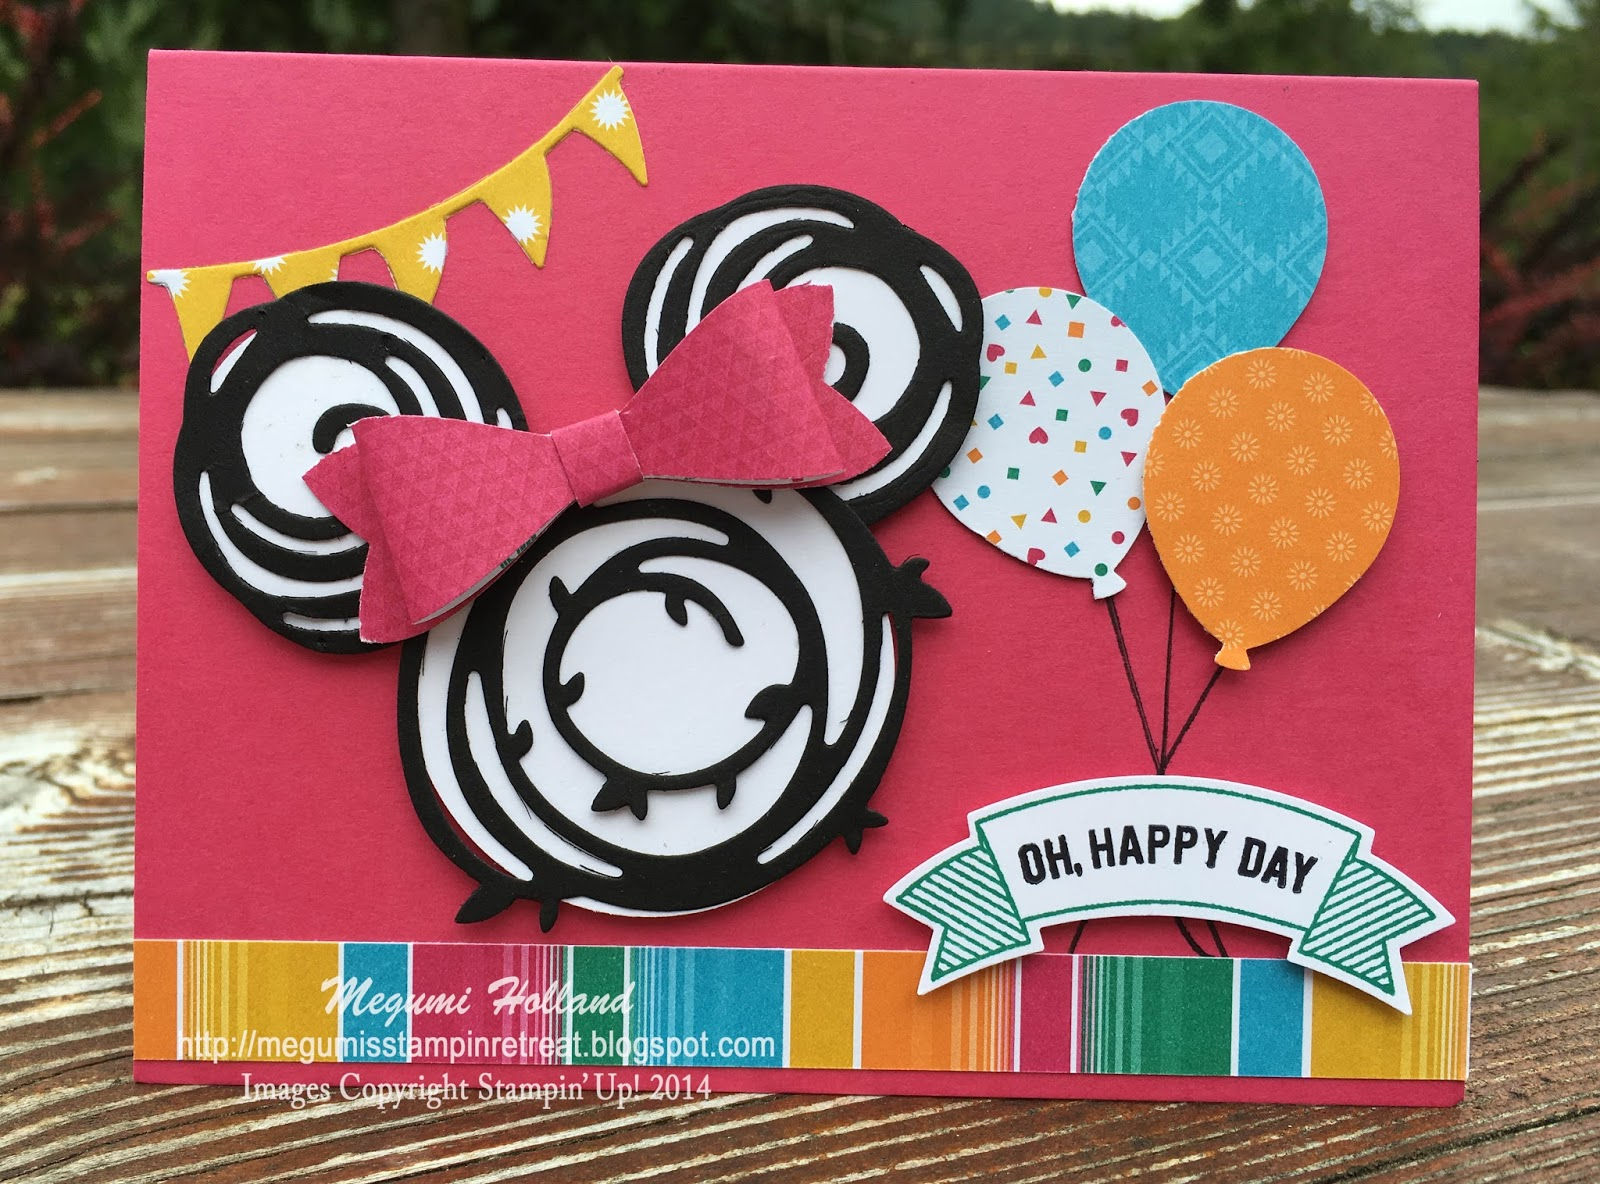 megumi's stampin retreat swirly scribbles minnie mouse birthday card, Birthday card